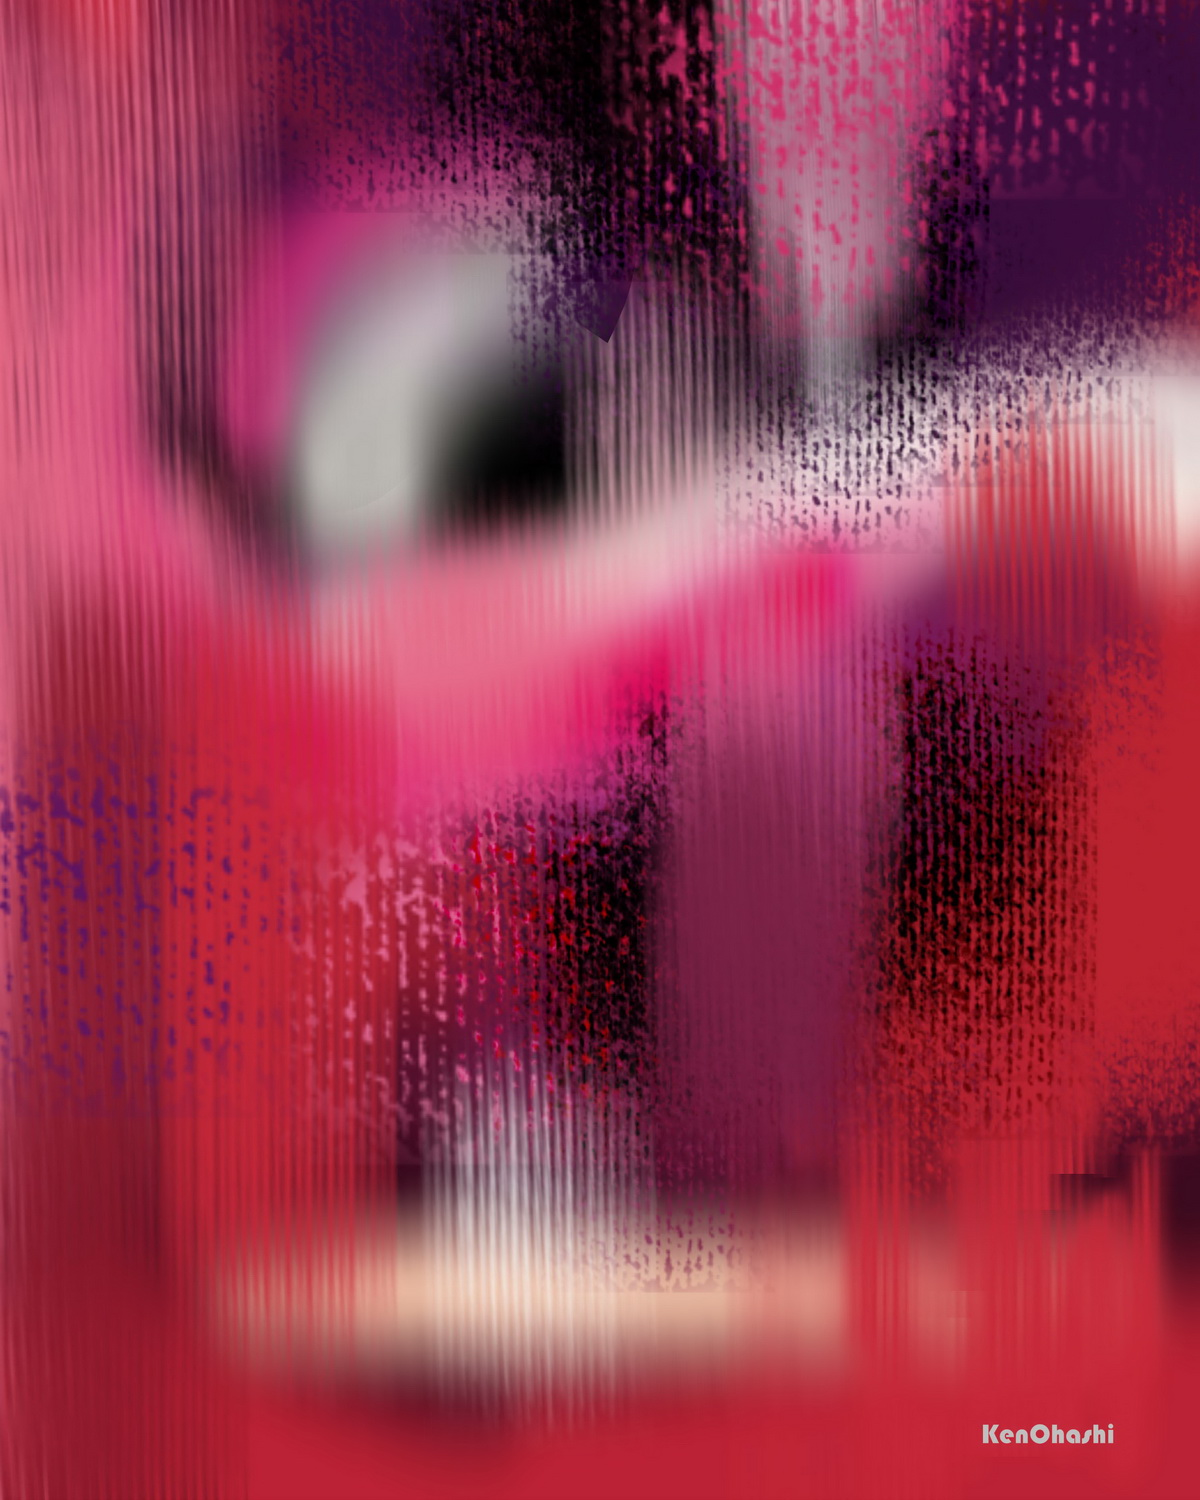 abstraction_20100809_01